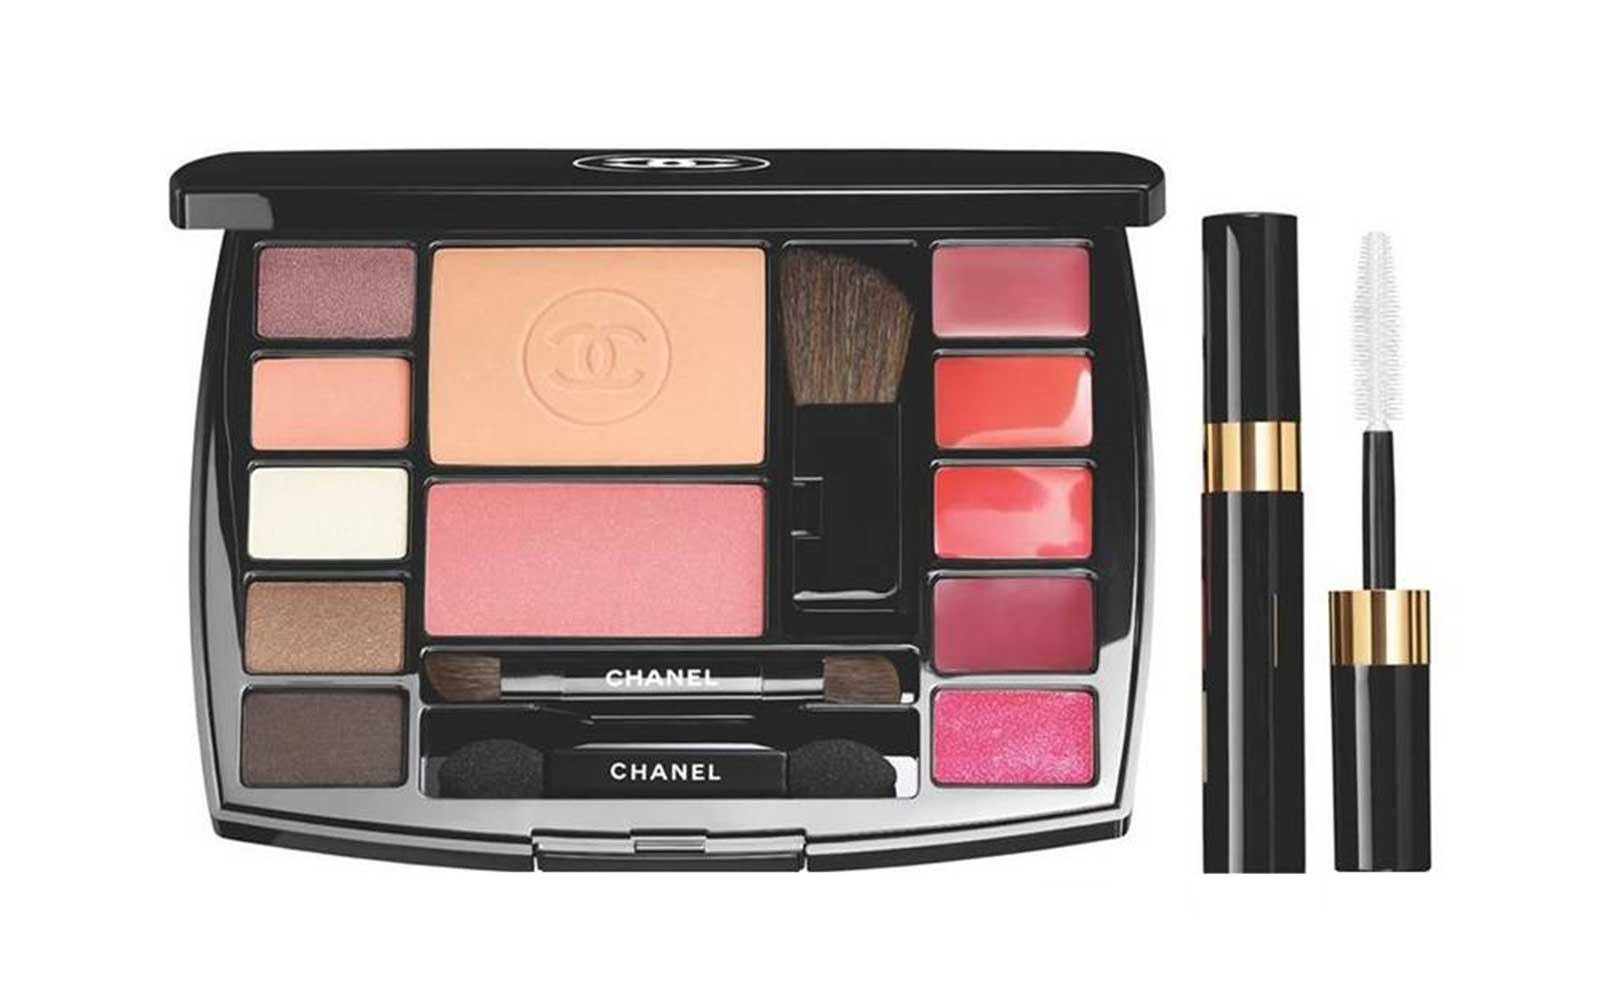 Chanel Take Flight Travel Palette Set